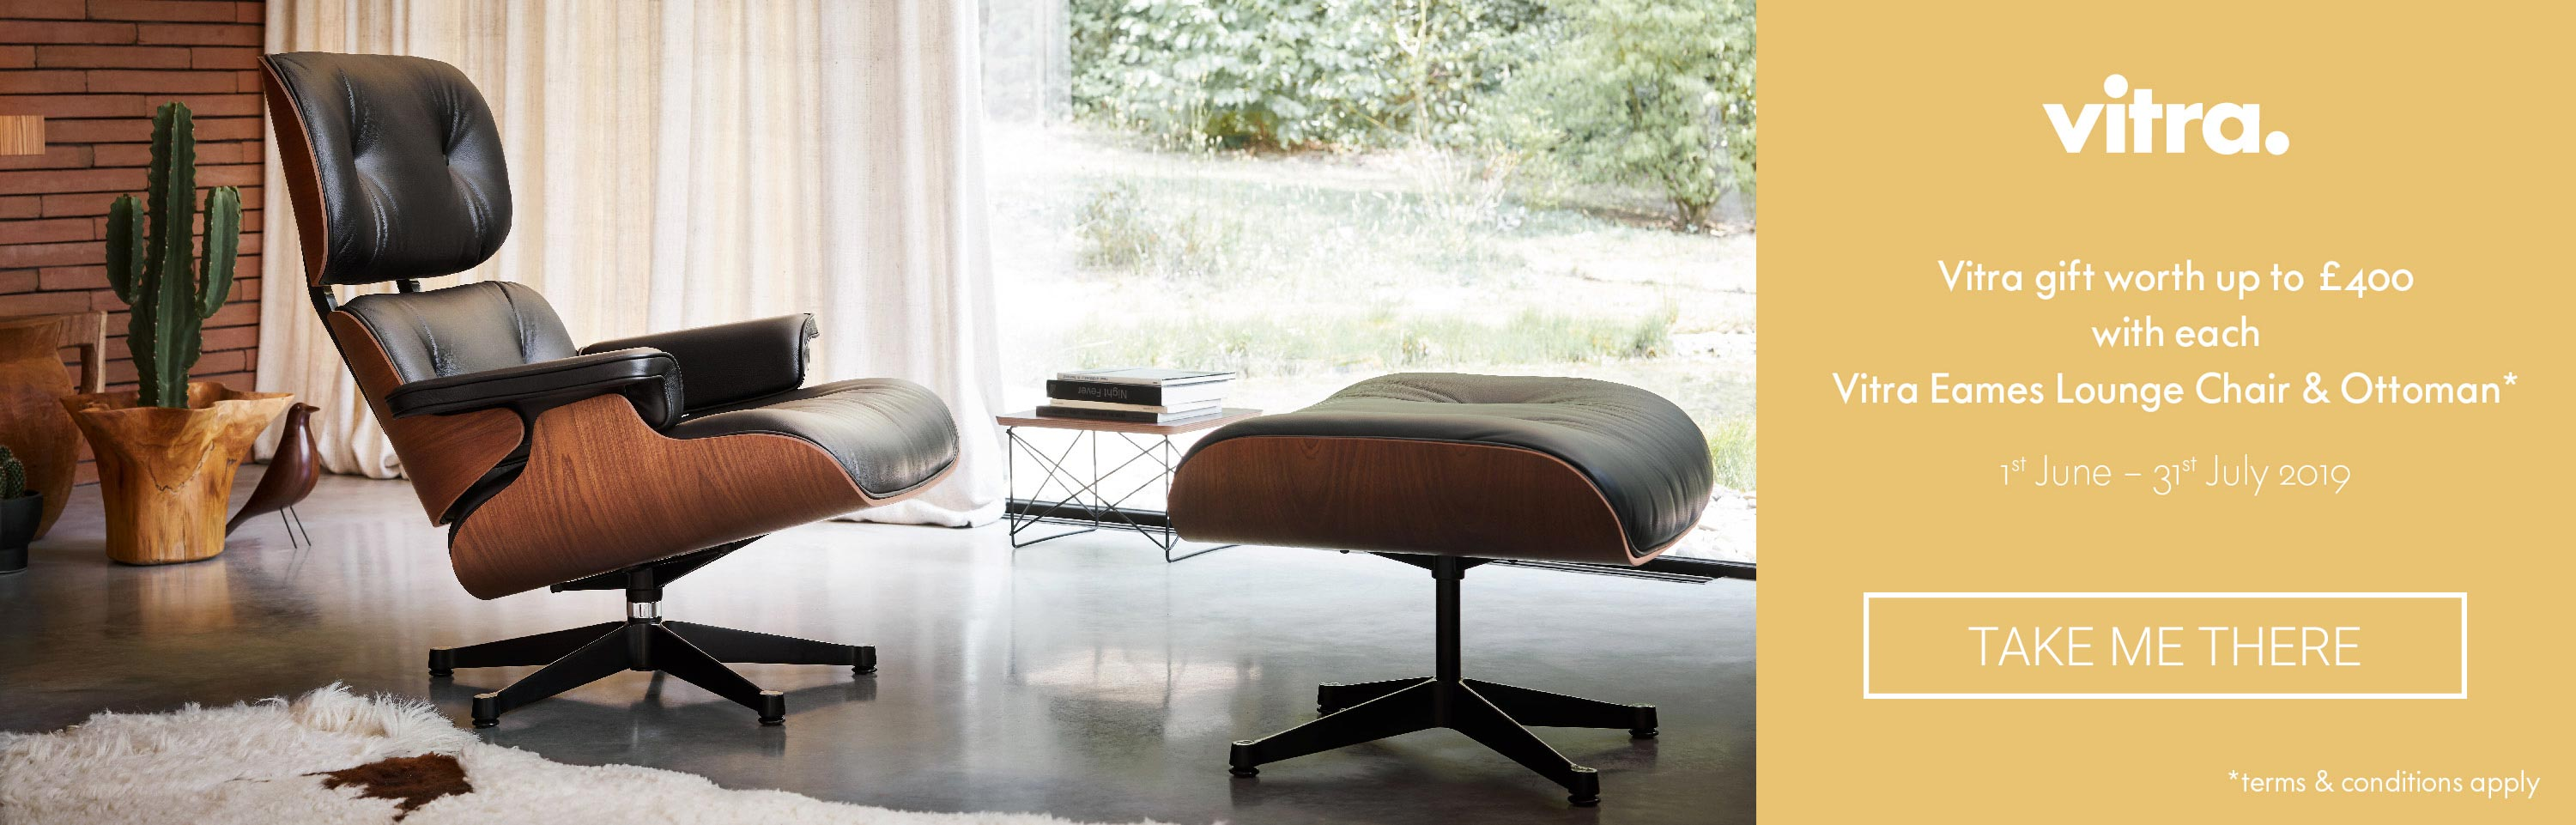 Vitra Summer 2019 Free Gift Promotion Eames Lounge Chair & Ottoman